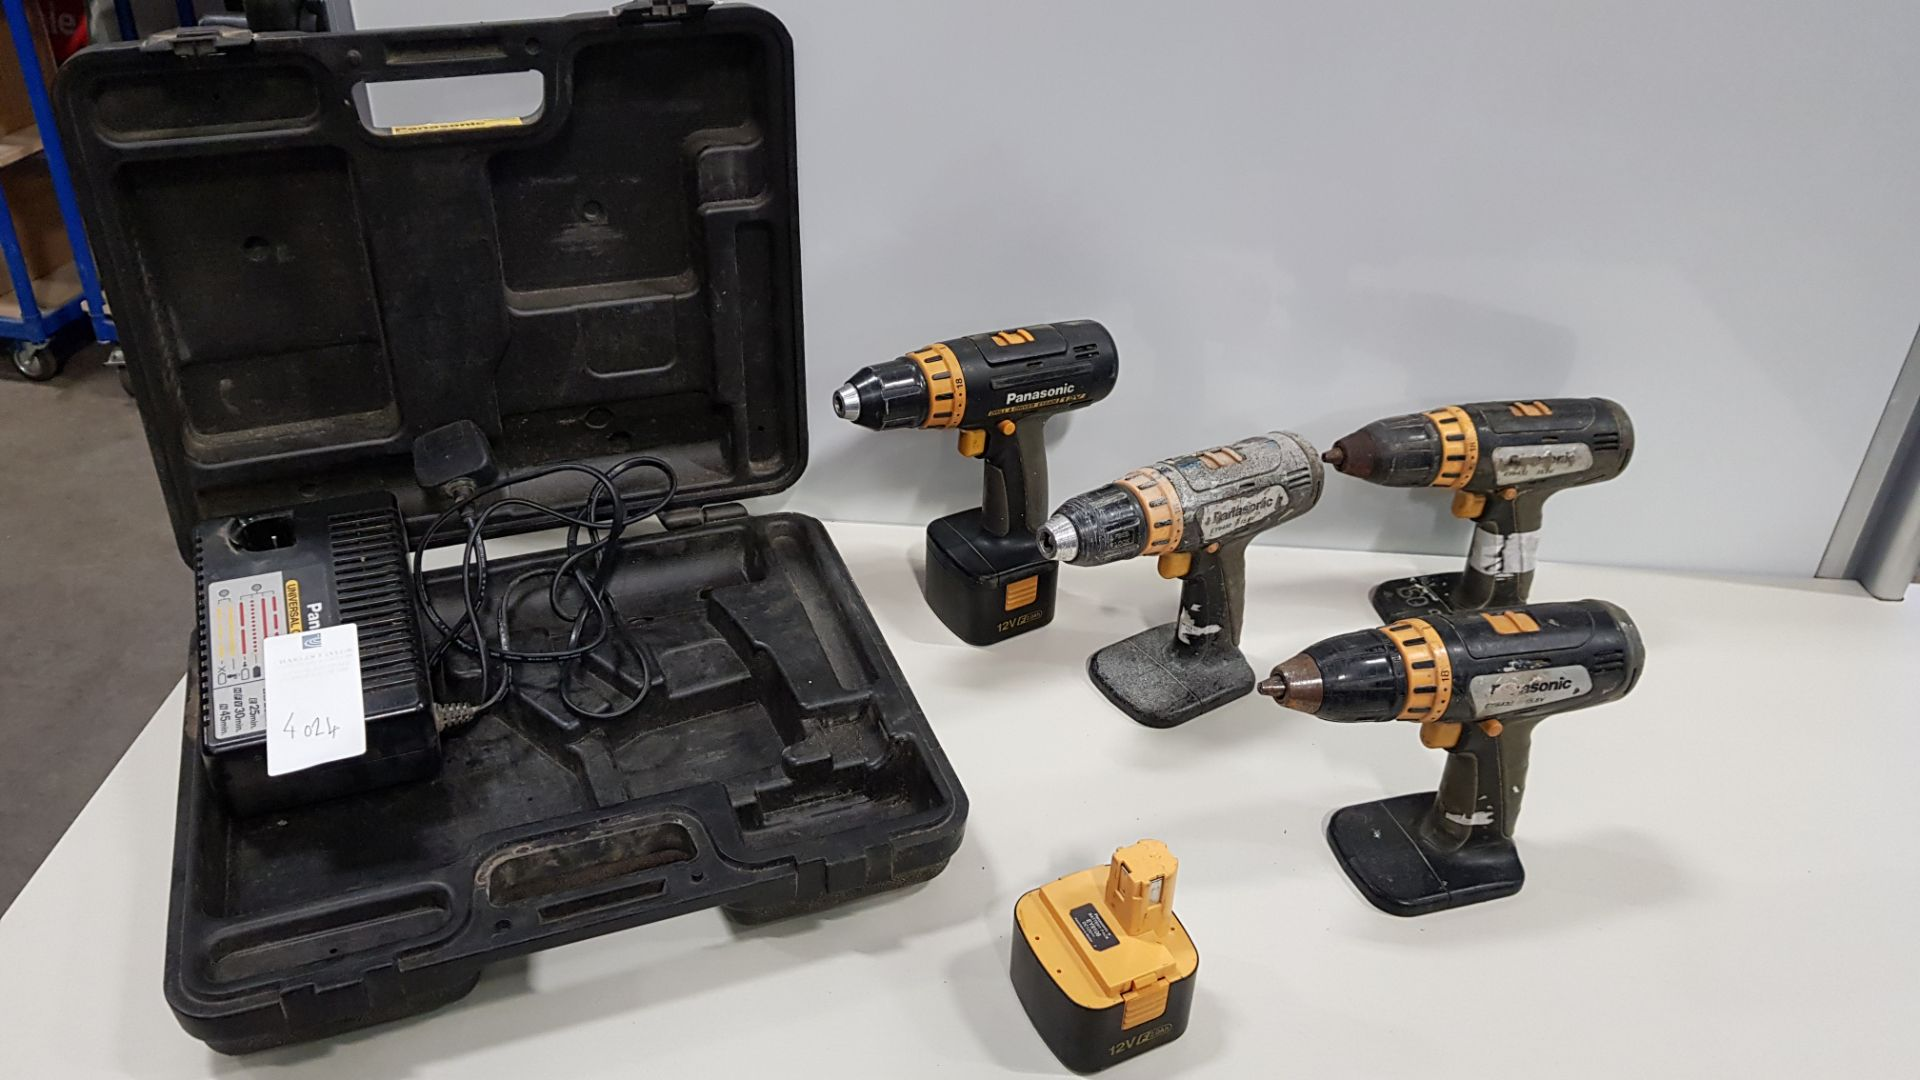 4 X PANASONIC DRILL SHELLS 2 X BATTERYS, CHARGER AND CARRY CASE